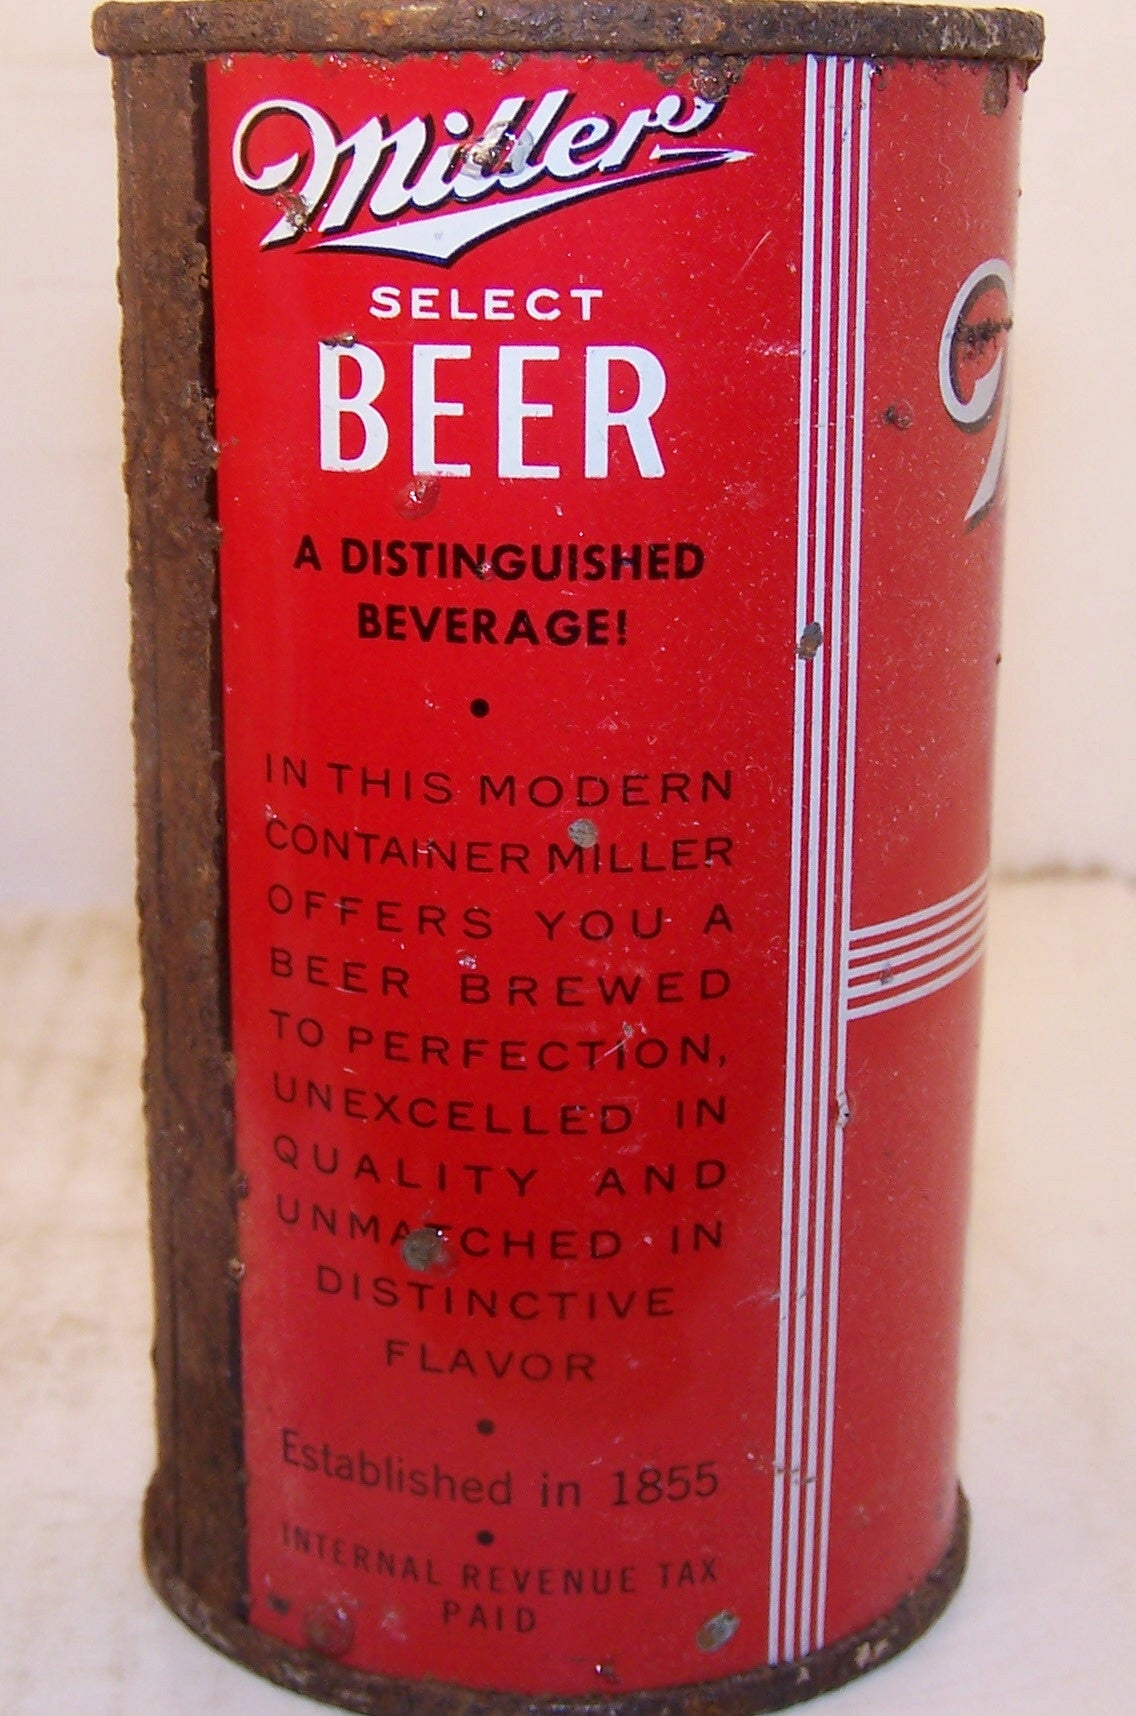 Miller Select Beer, O.I USBC 99-29 Dumper Sold on 4/1/15